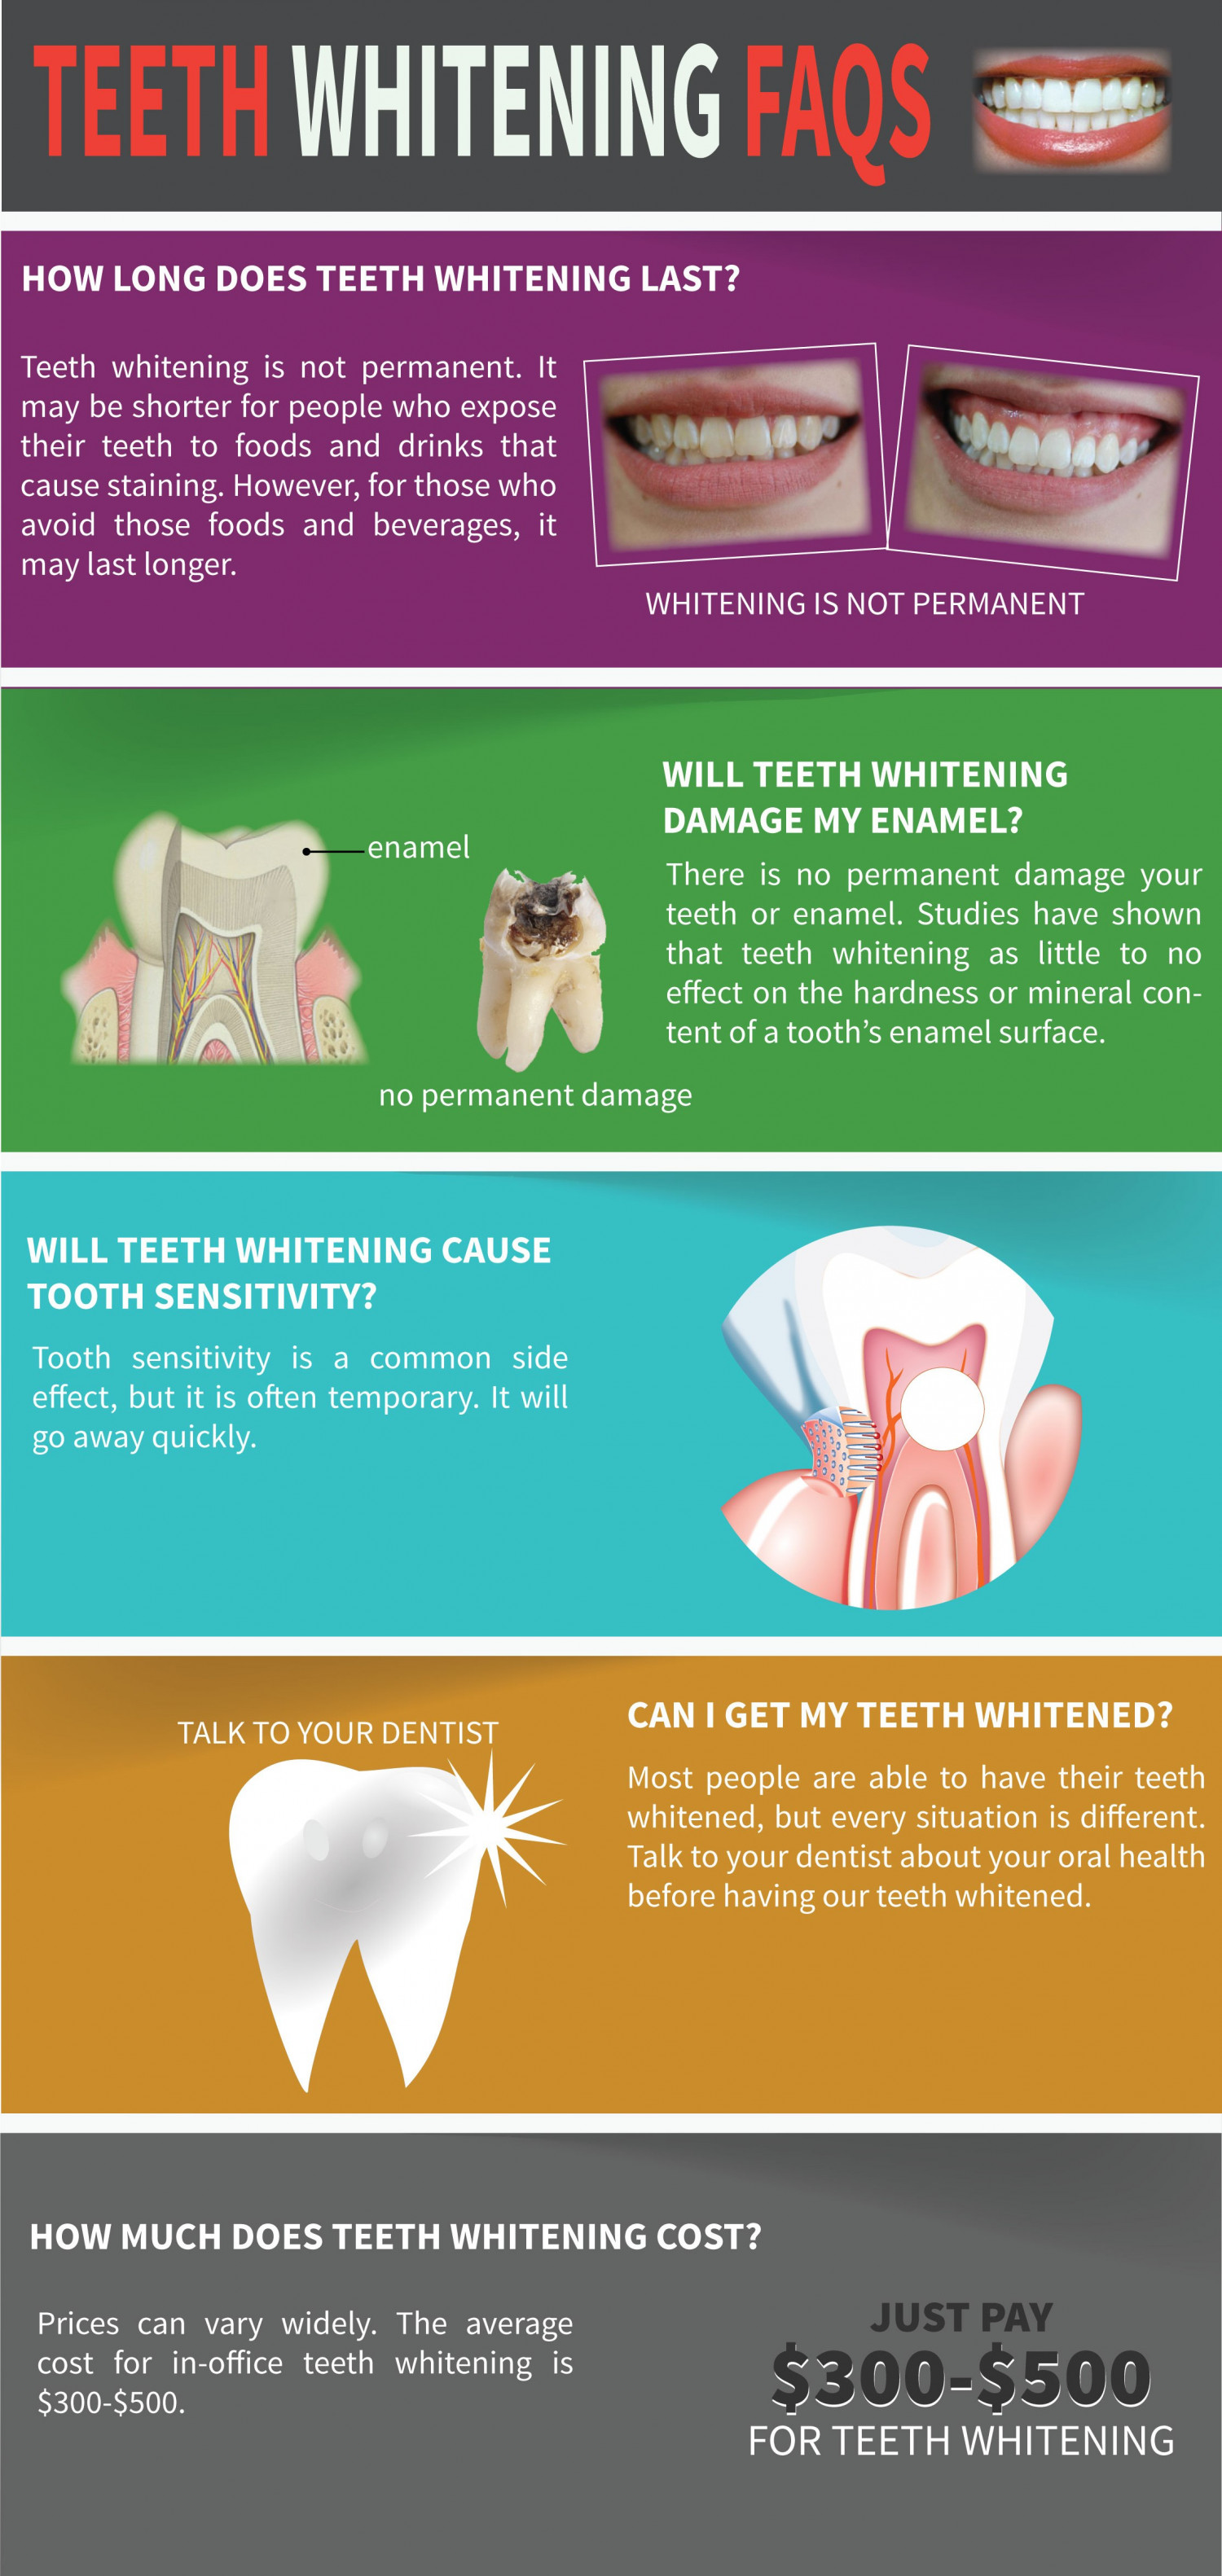 Teeth Whitening FAQs Infographic